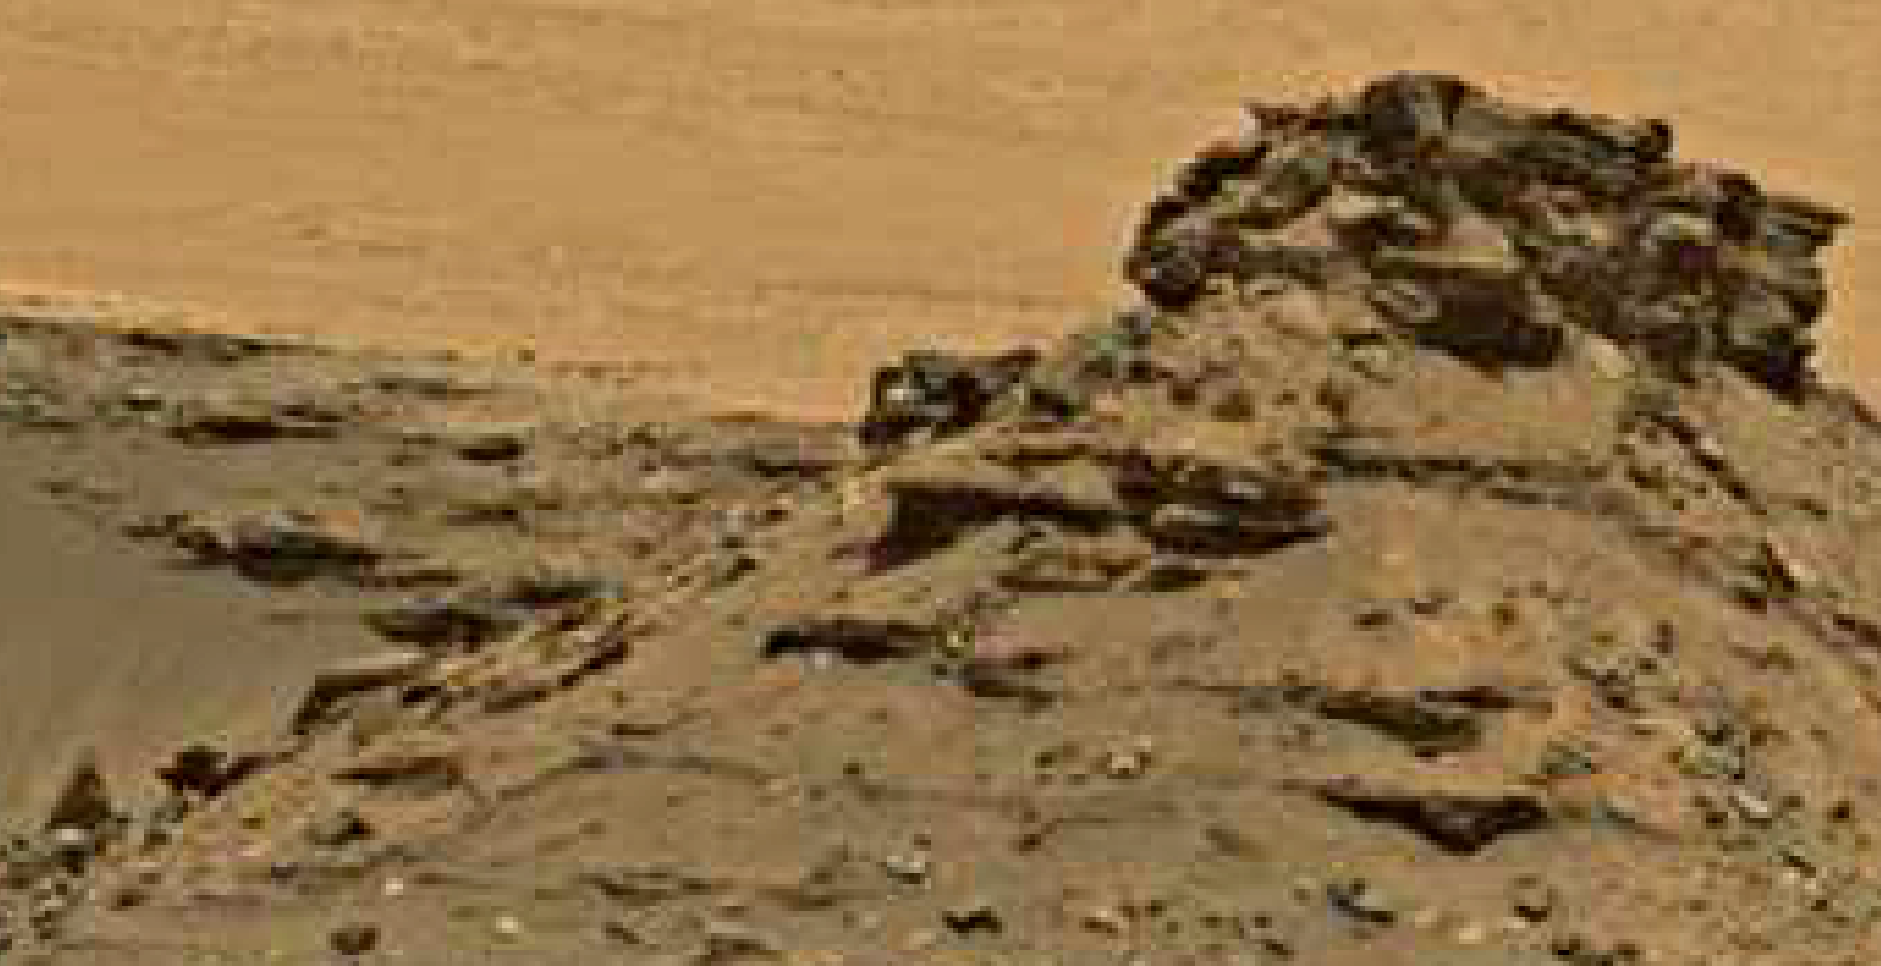 mars sol 1447 anomaly artifacts 5 -bird-plane-butte - was life on mars